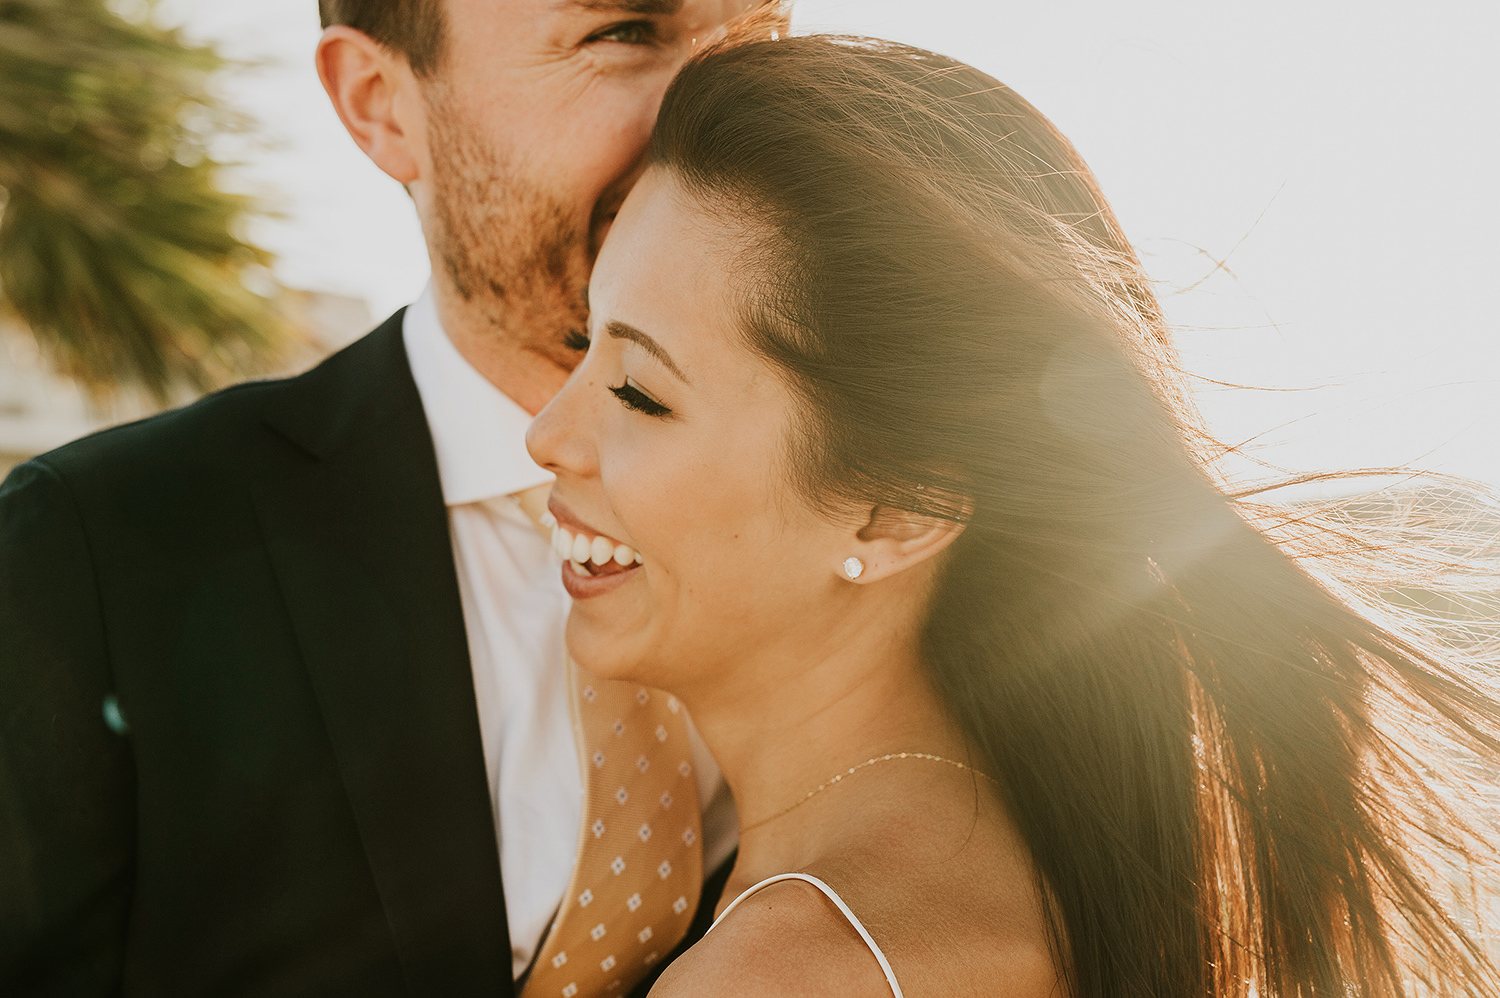 CherylReed_Wedding_Kape_Photography_WeddingPhotography_Mexico_Boda_Fotografia_Royalton_Hideway_Cancun_RivieraMaya_PlayadelCarmen_Beach_981FB_BLOG.jpg